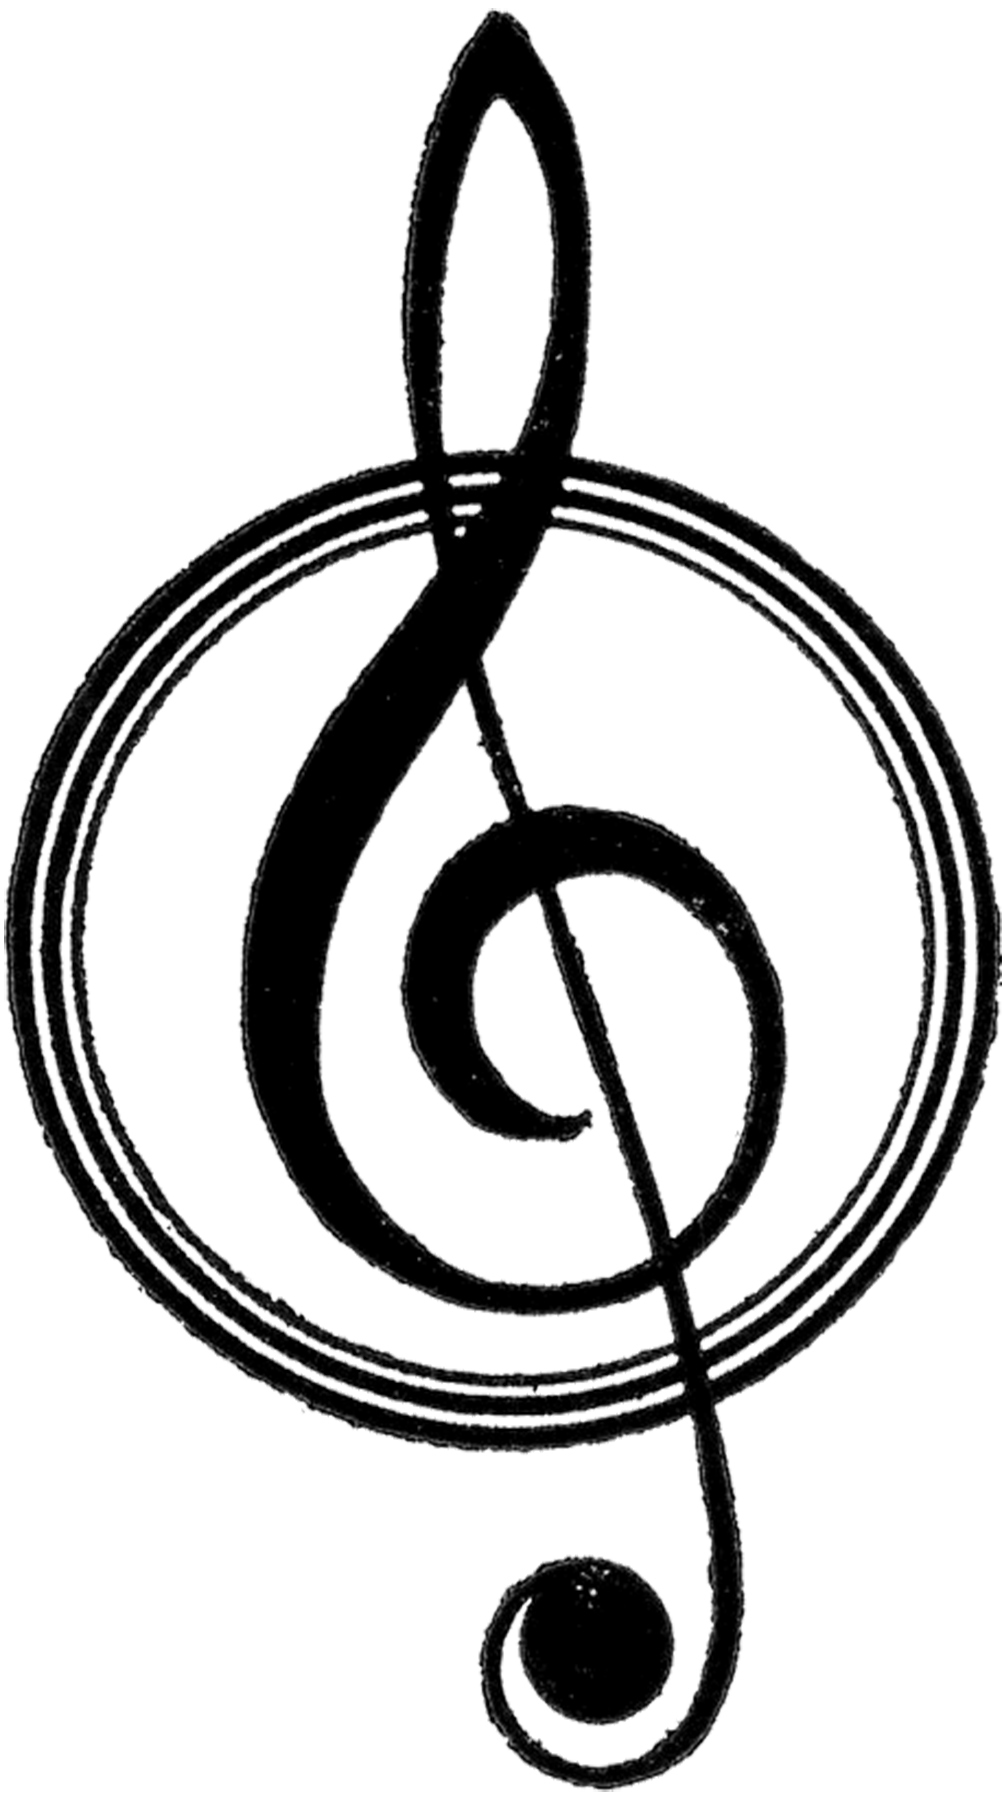 music emblems clipart - photo #33